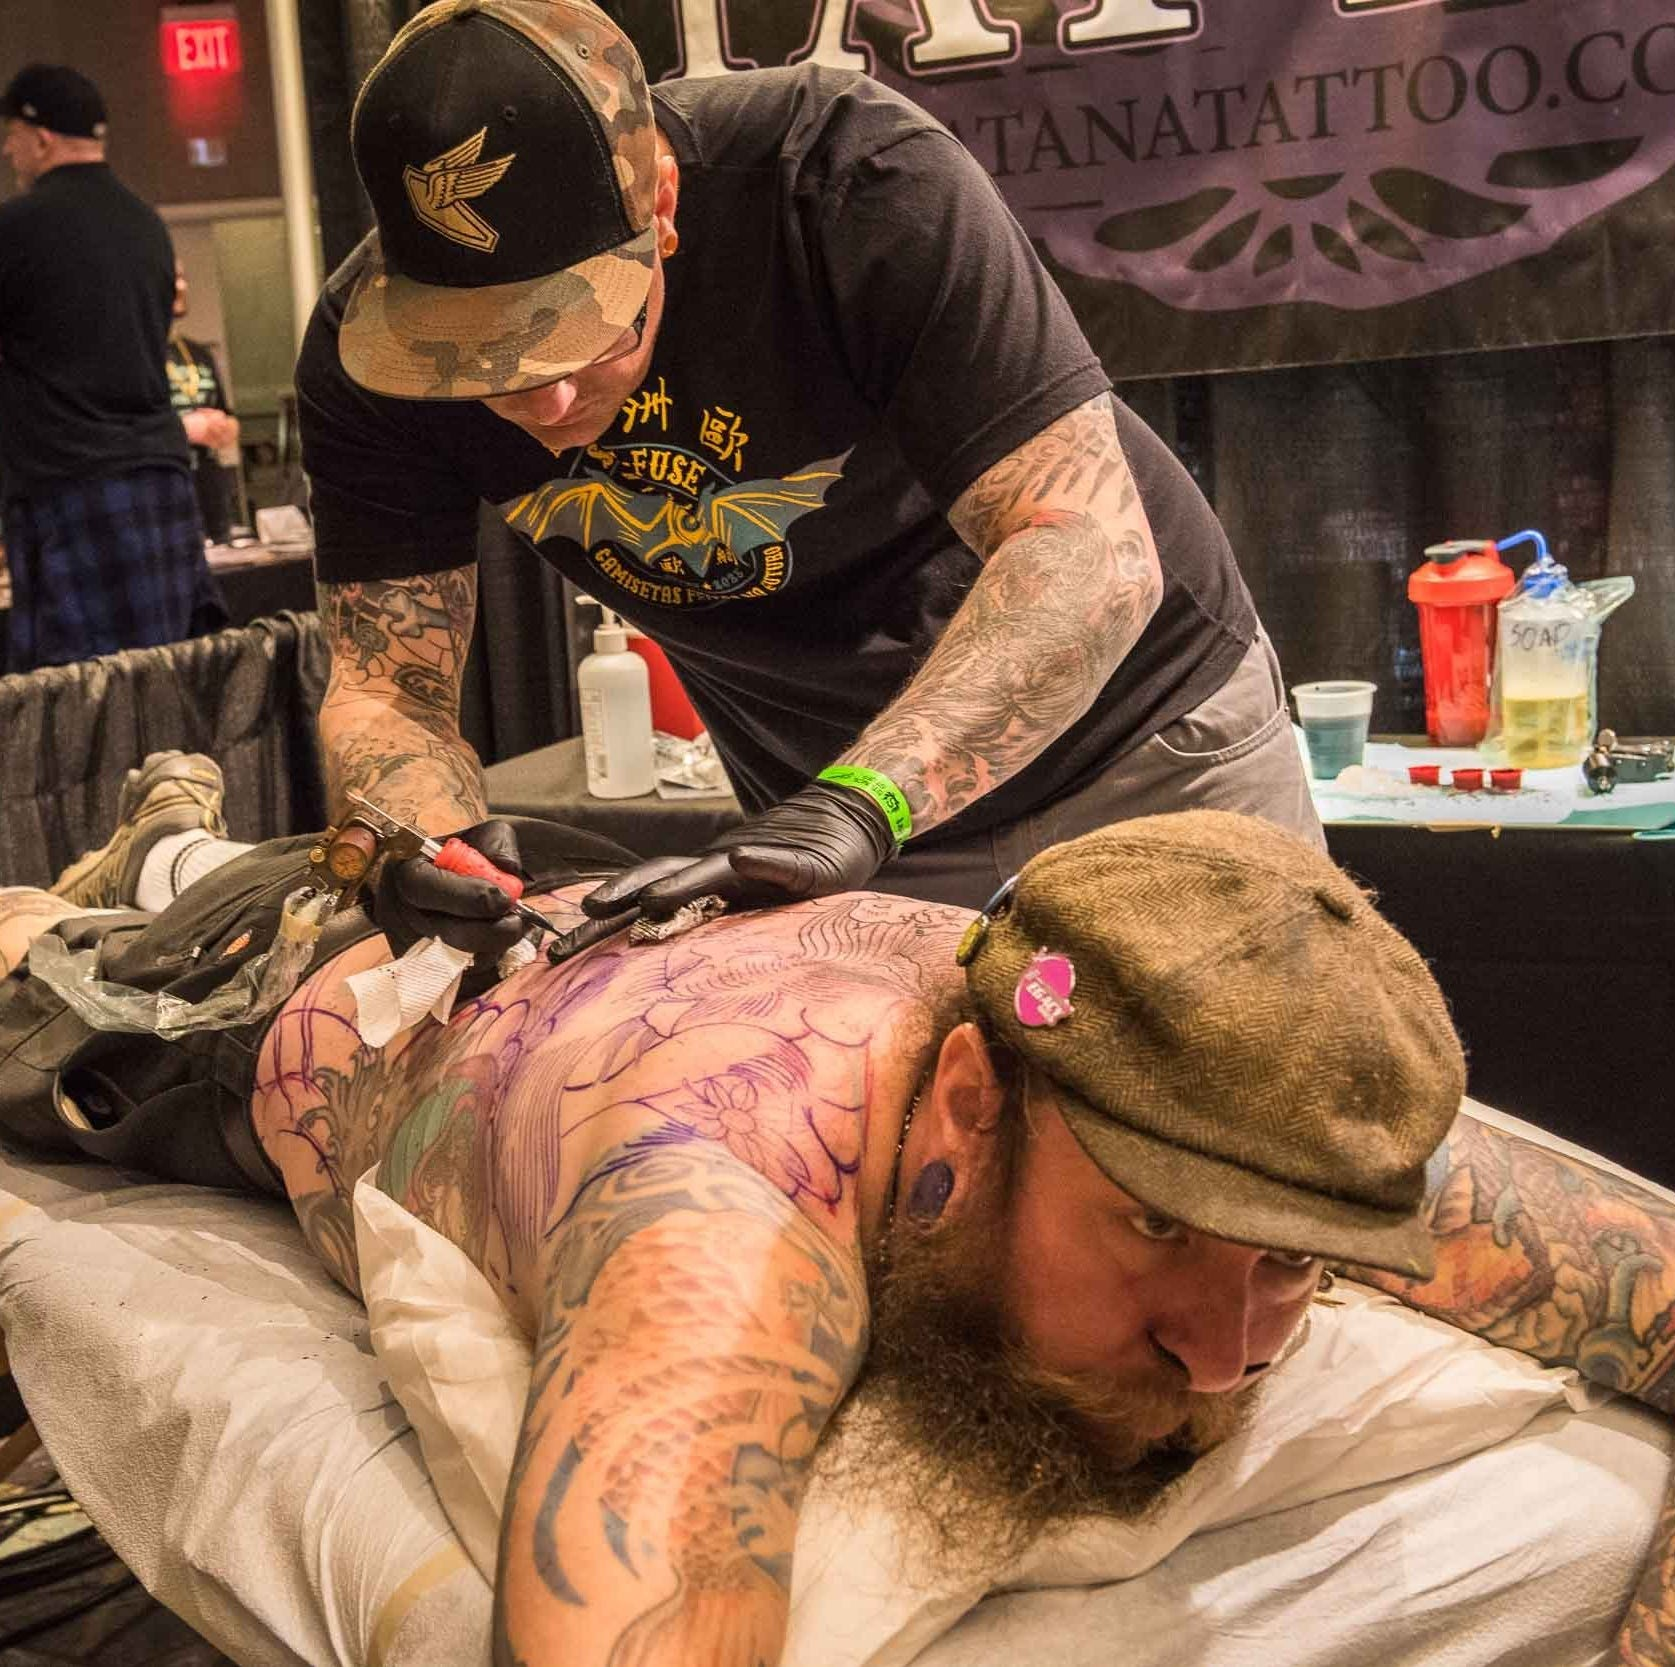 Detroit tattoo expo attracts artists and ink lovers from around the world